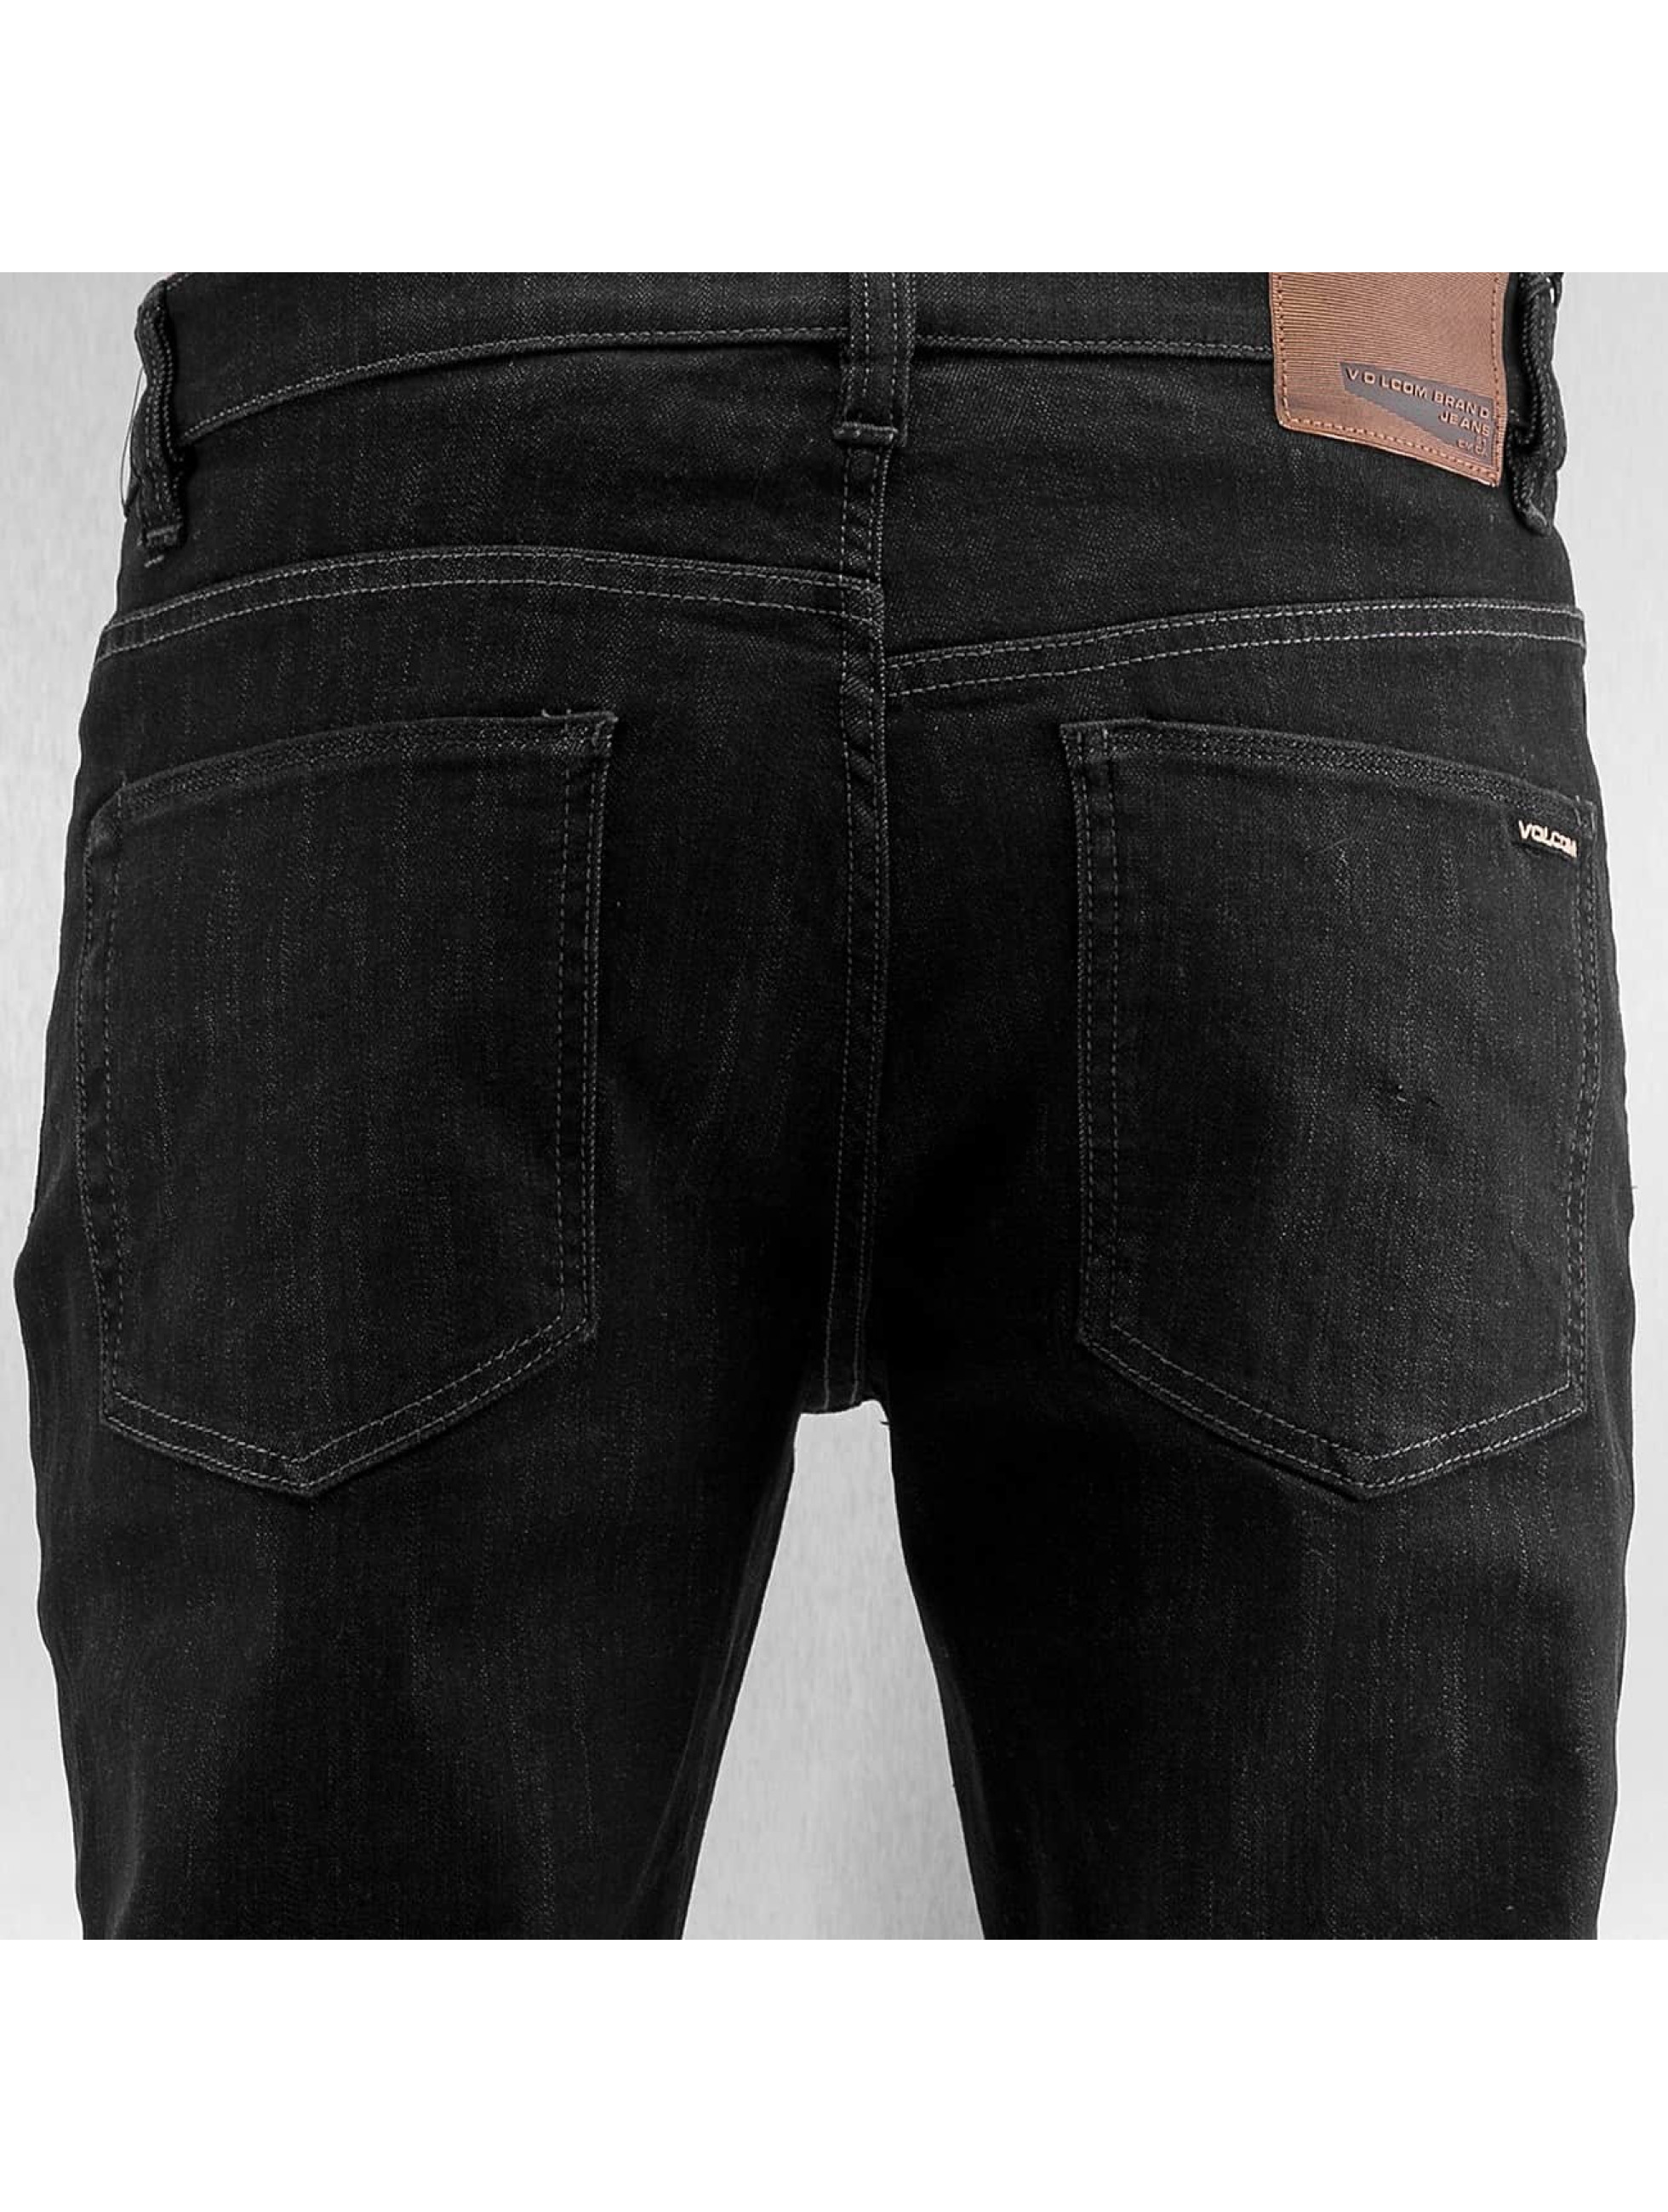 Volcom Jeans straight fit Solver nero